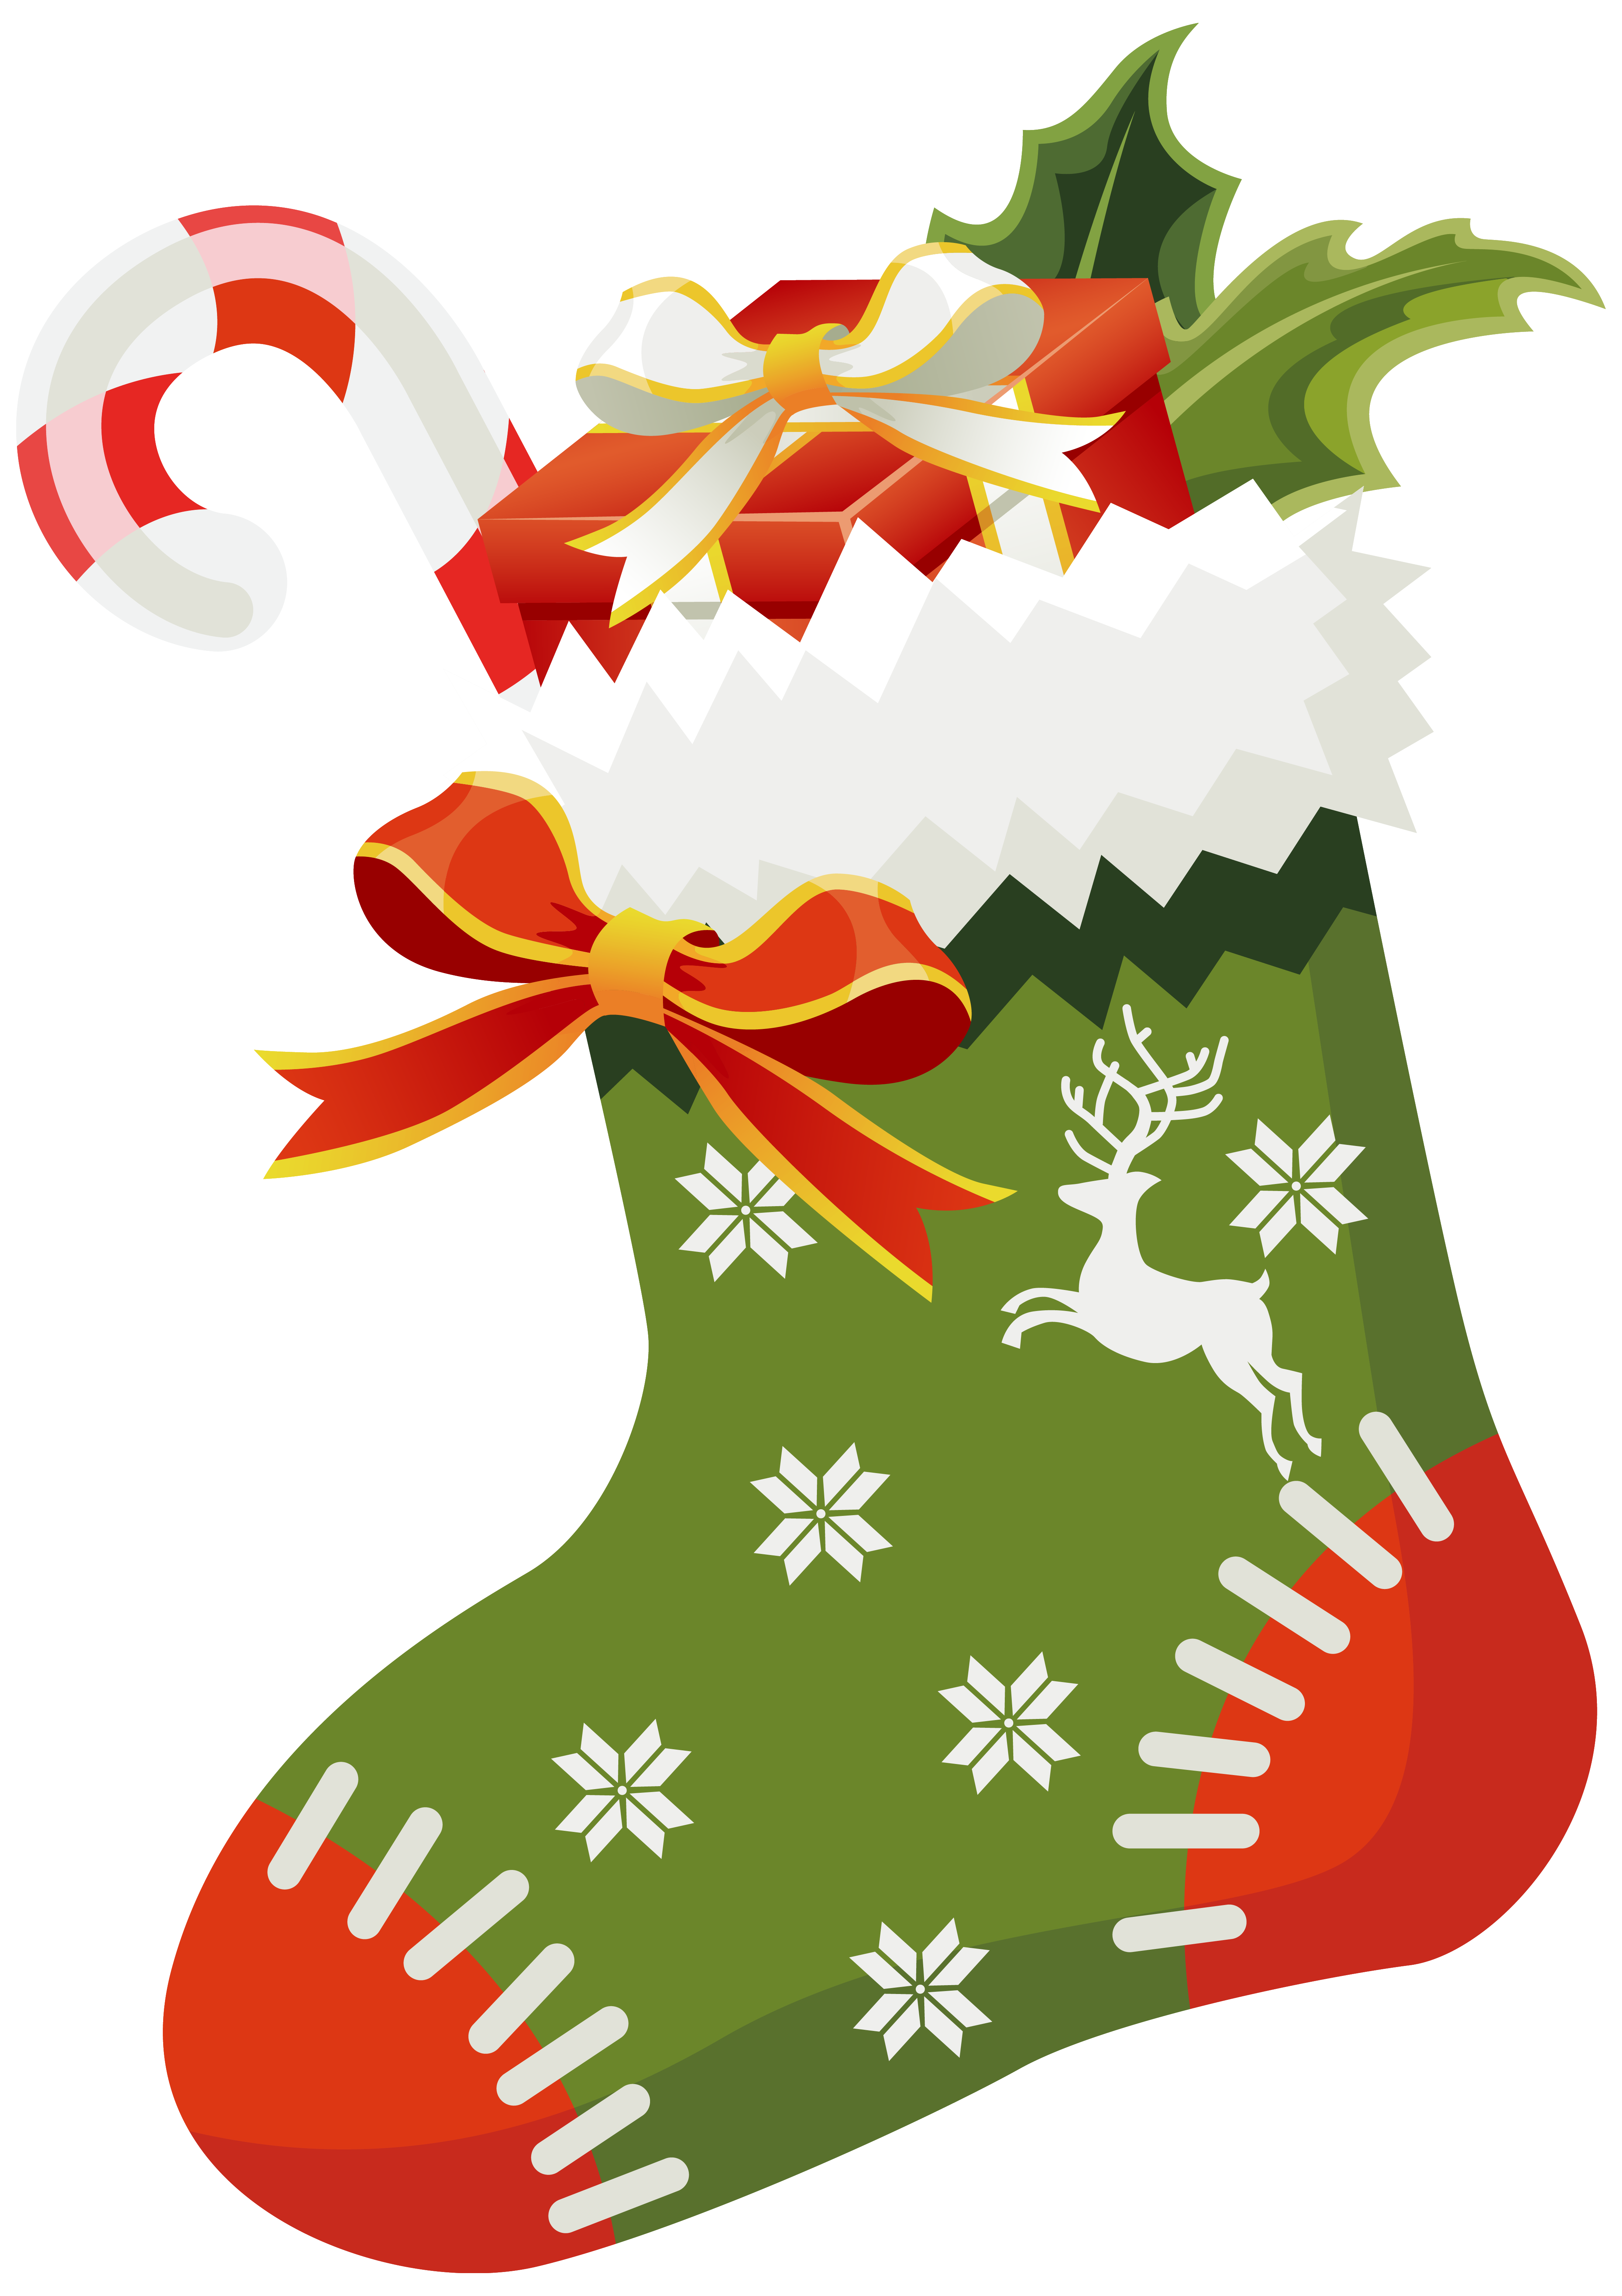 pin by amy on christmas stockings pinterest rh pinterest co uk christmas stockings clip art christmas stockings clip art